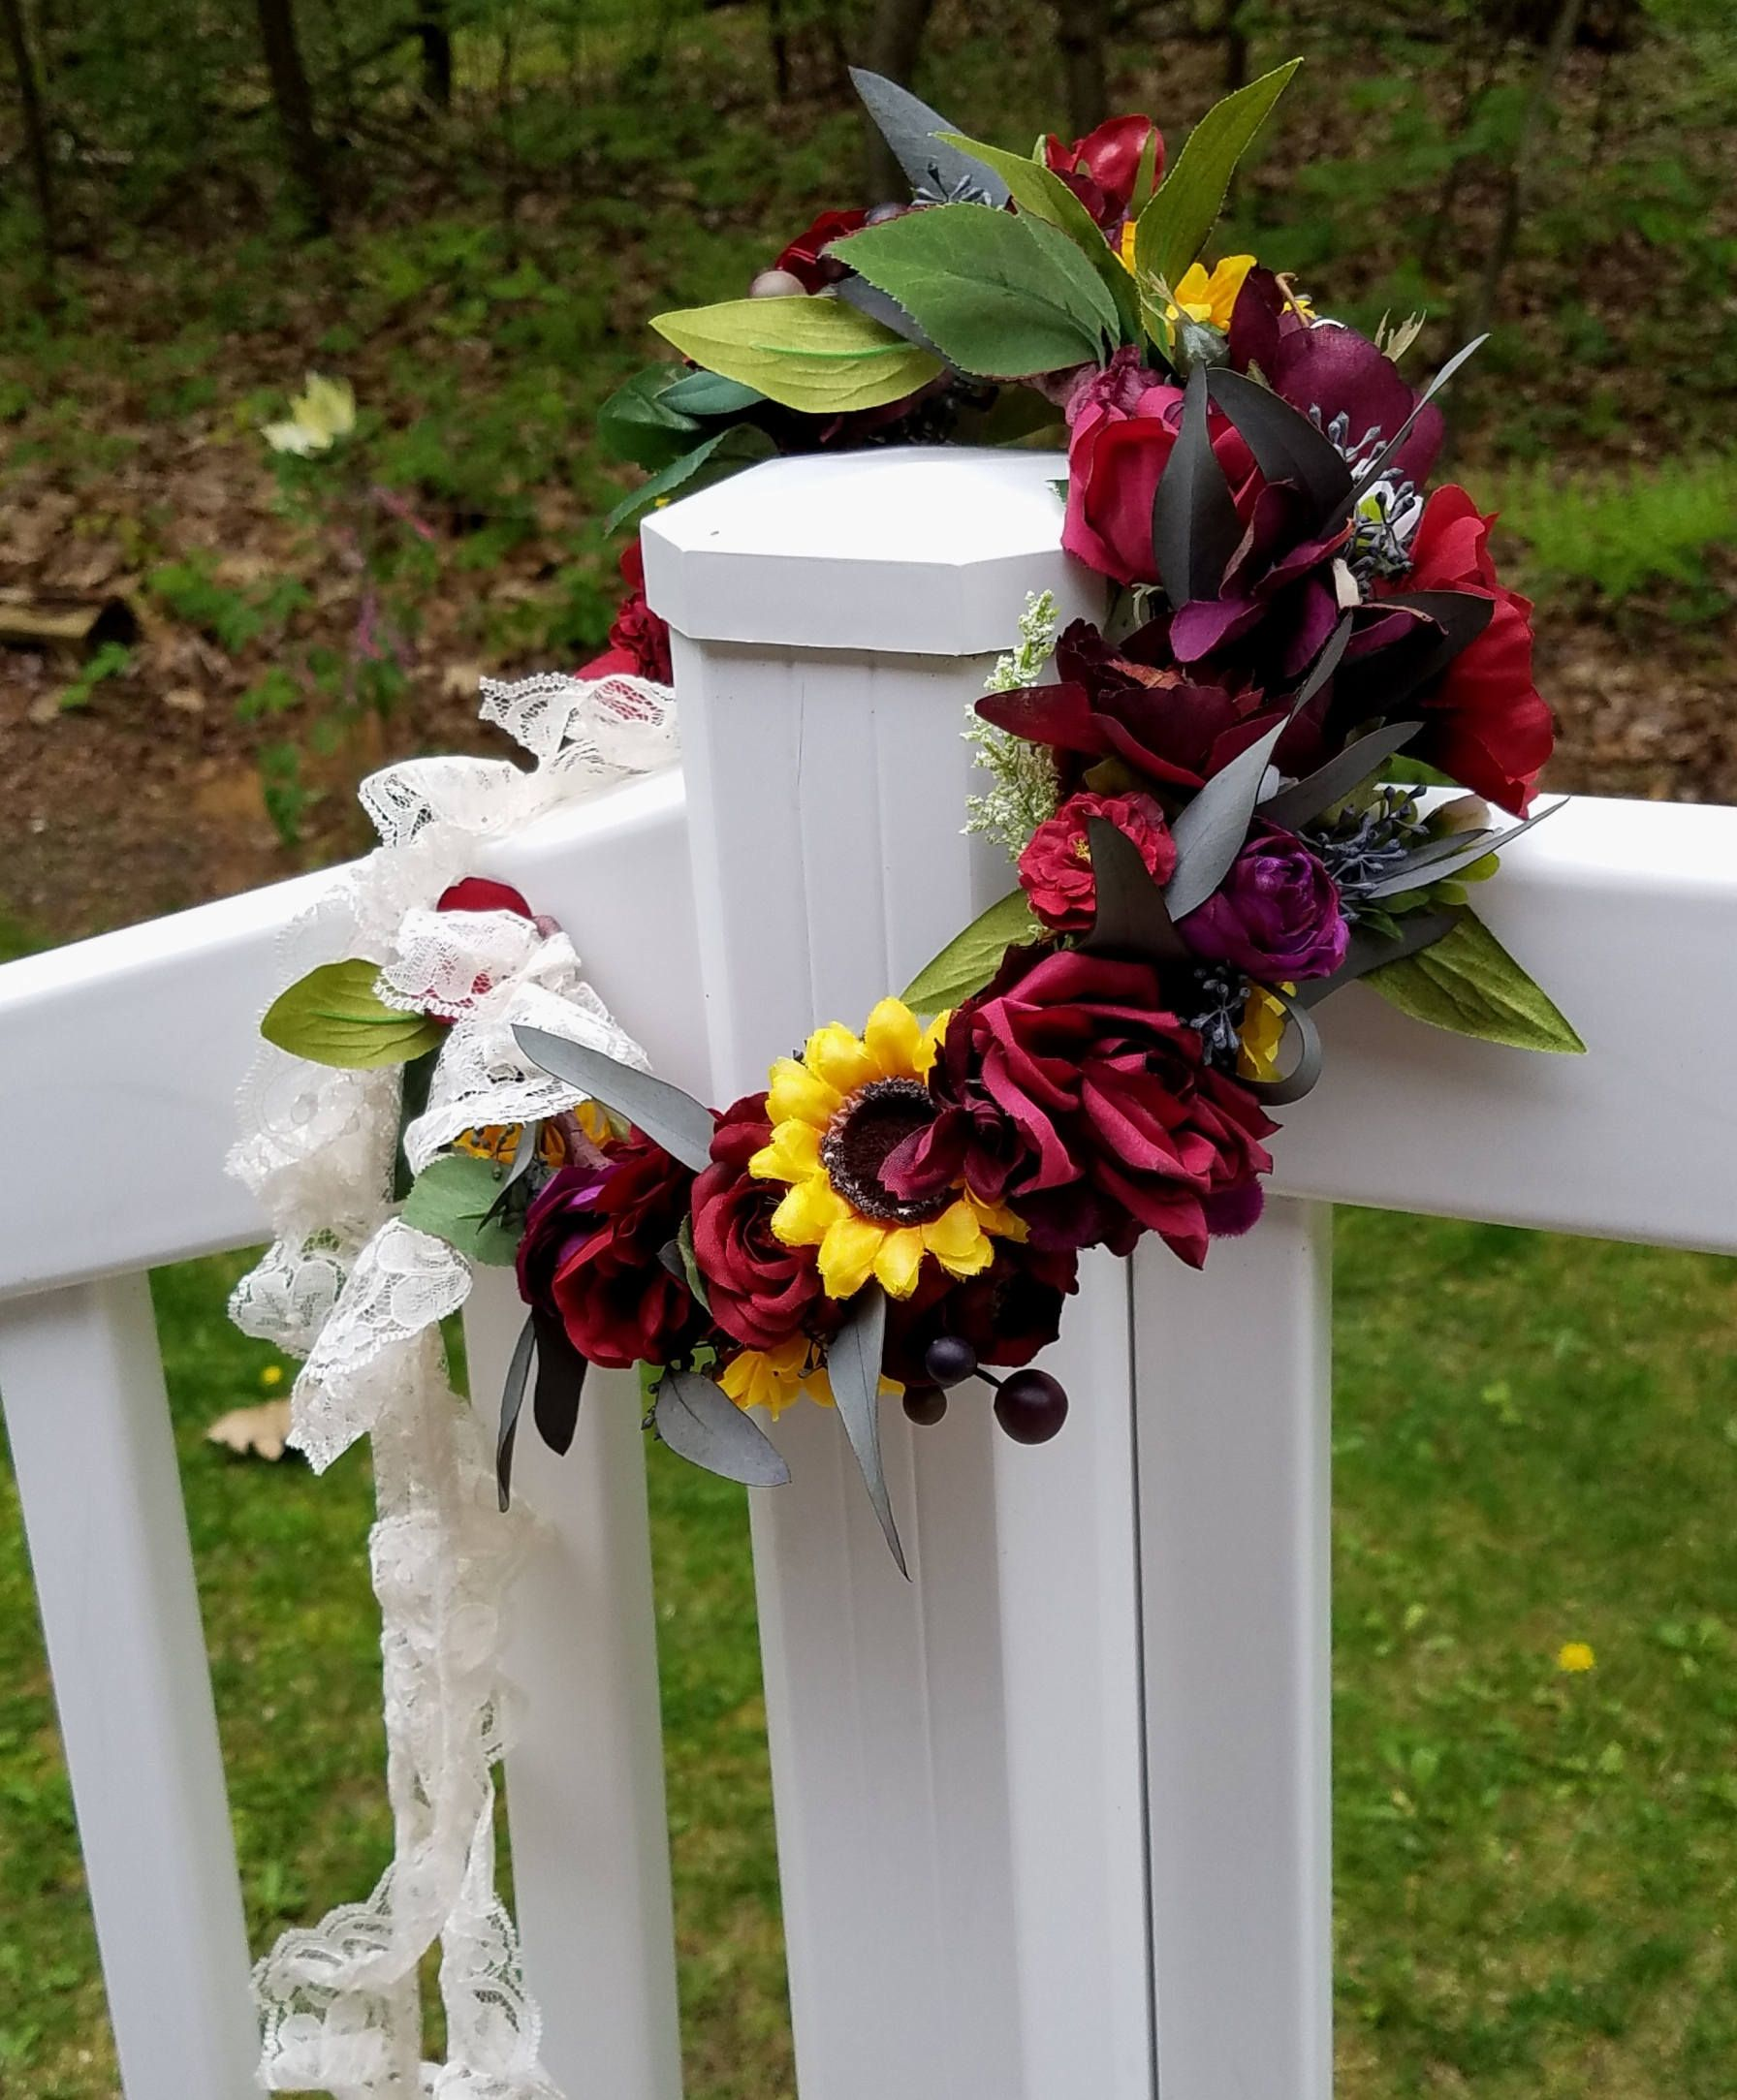 Fall Wedding Hairstyles With Flower Crown: Custom Bridal Floral Crown Sunflowers Greenery Foliage